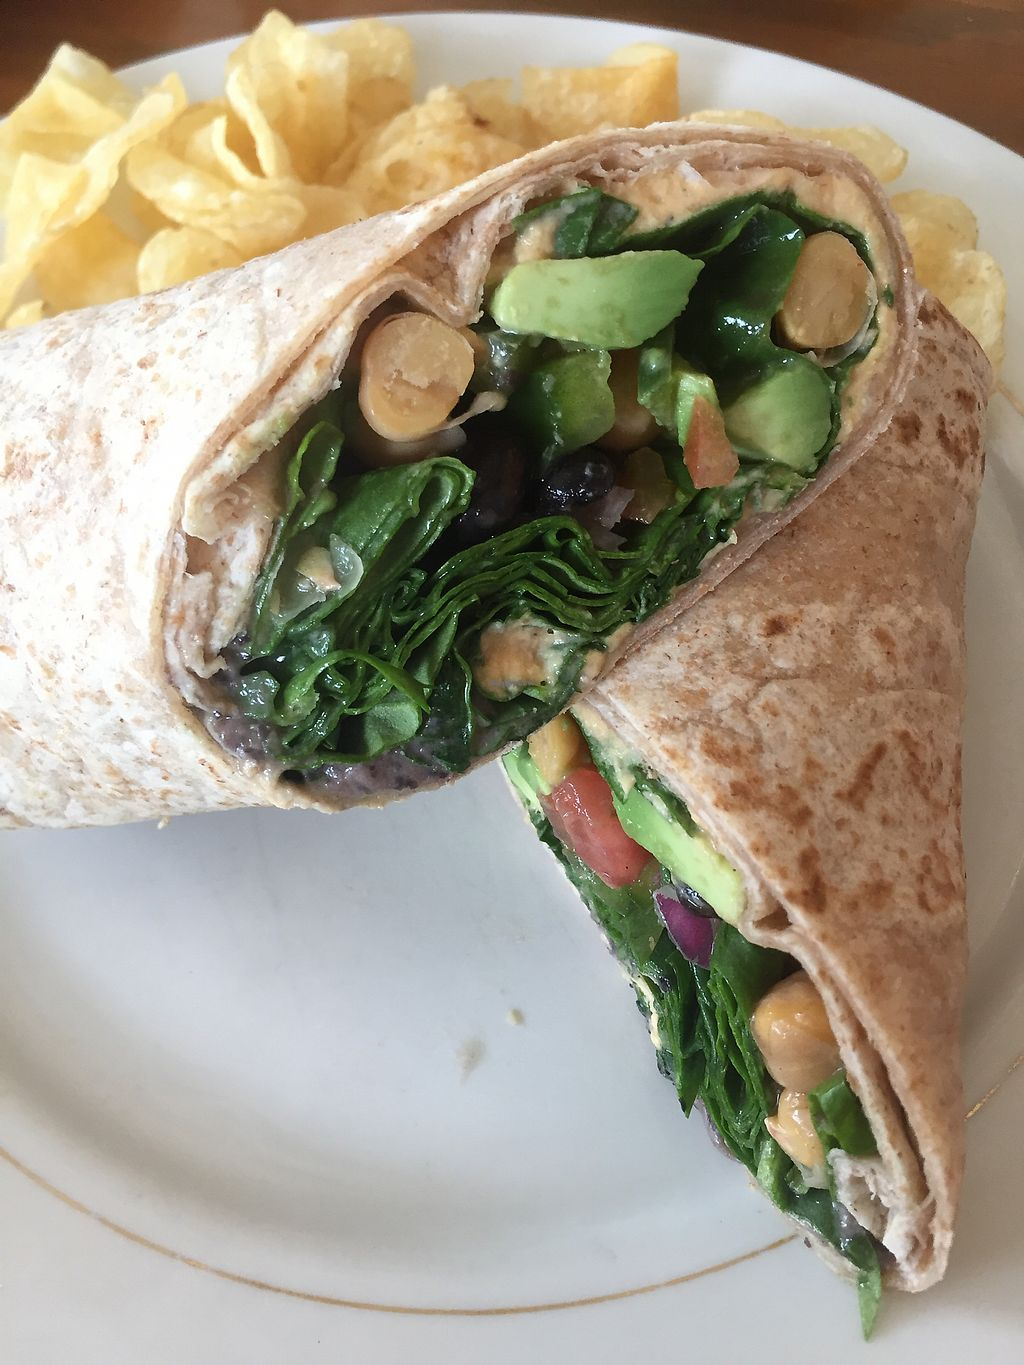 """Photo of Java Surf Cafe & Espresso Bar  by <a href=""""/members/profile/Shawna_01"""">Shawna_01</a> <br/>Market Wrap w Spinach  <br/> September 2, 2017  - <a href='/contact/abuse/image/99560/300037'>Report</a>"""